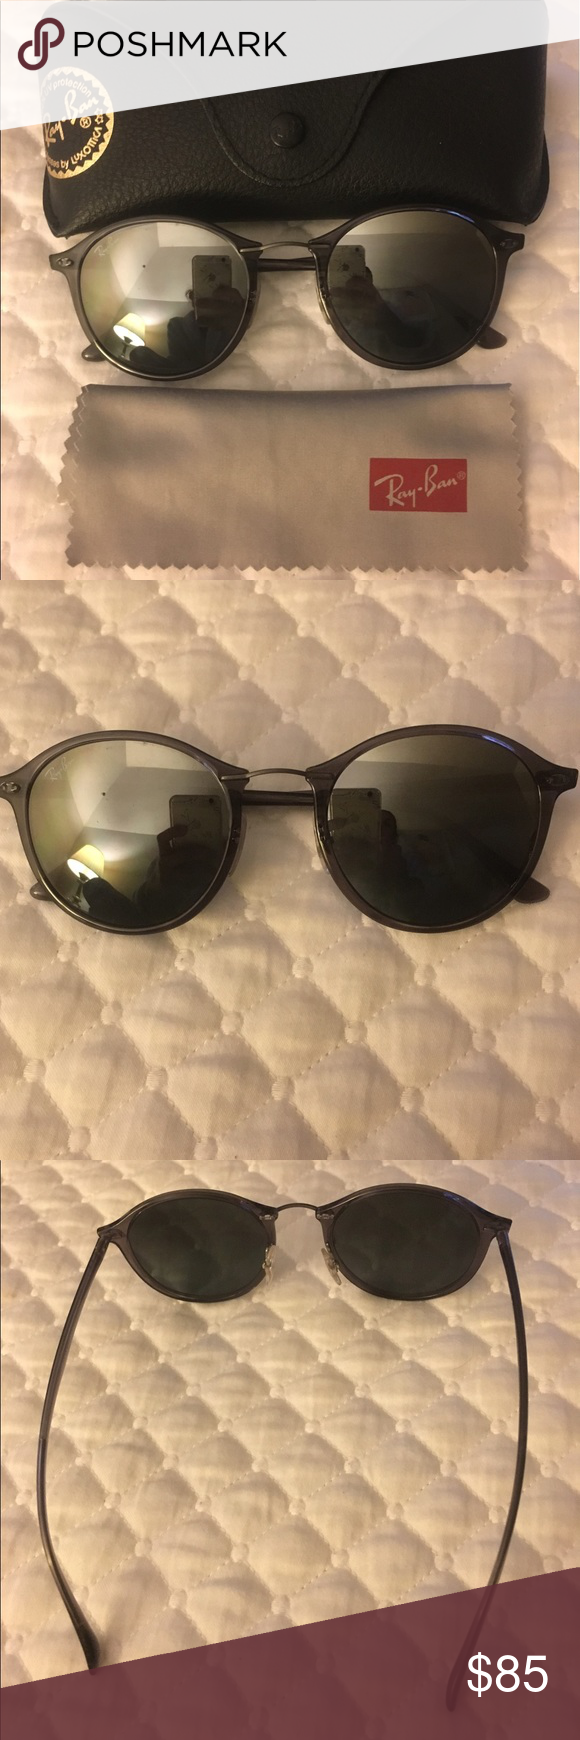 661572e01 Ray-Ban Round Light Rays Sunglasses Authentic Ray-Ban Round Light Ray  Sunglasses// Gently used// logos on the lens and arm// Metal accent nose  bridge// ...